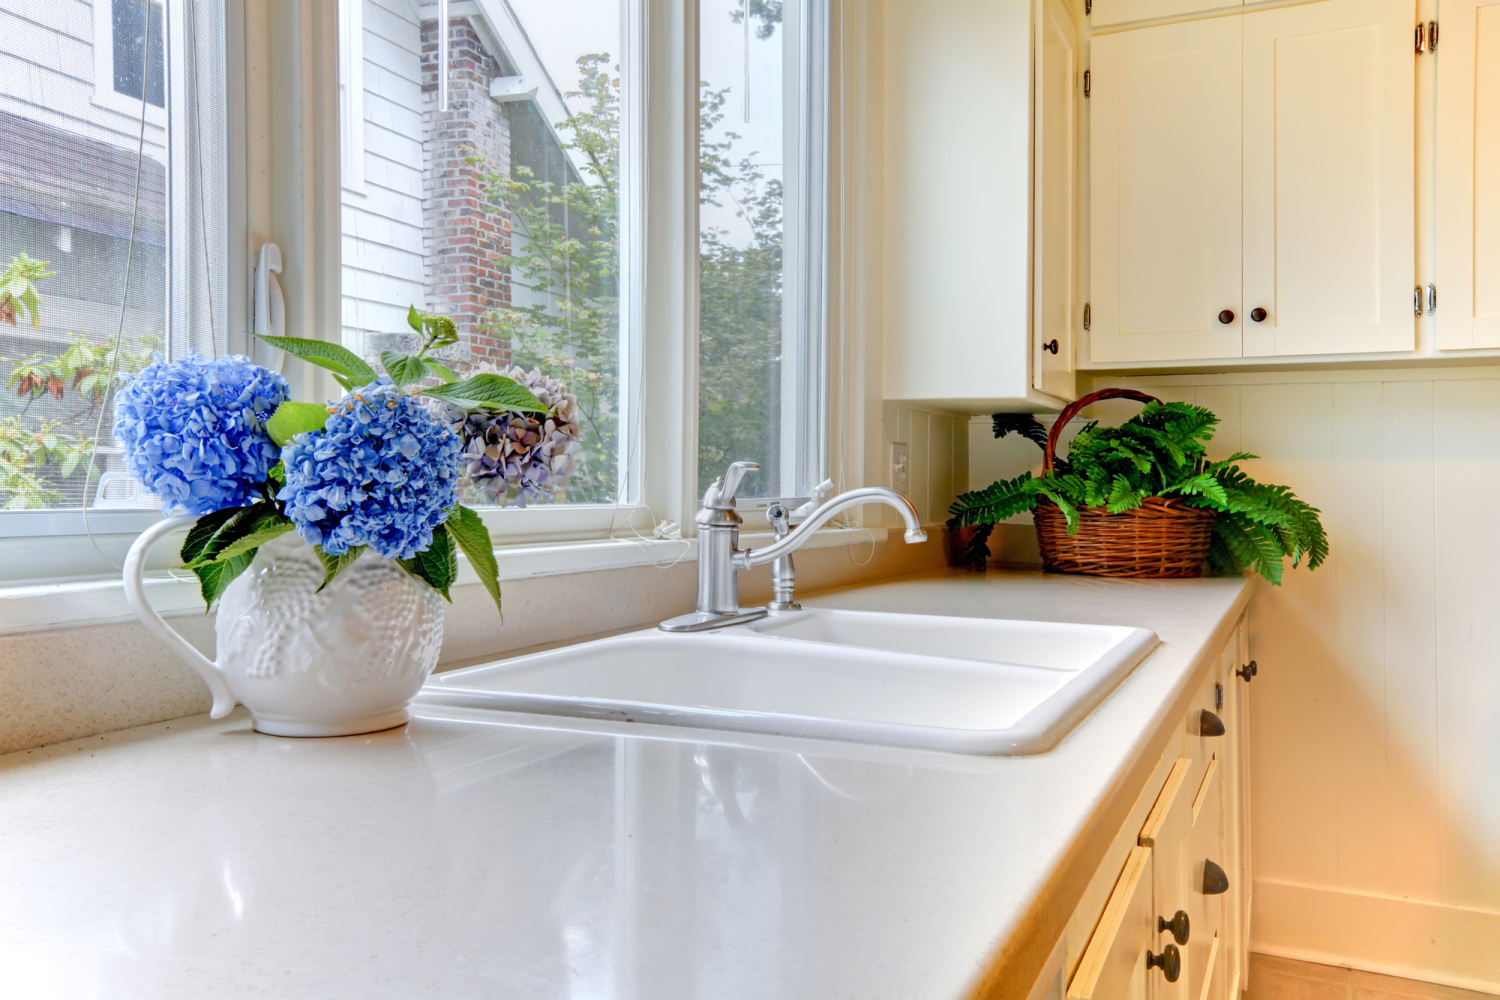 a clean kitchen. 3 steps to take before you declutter your home